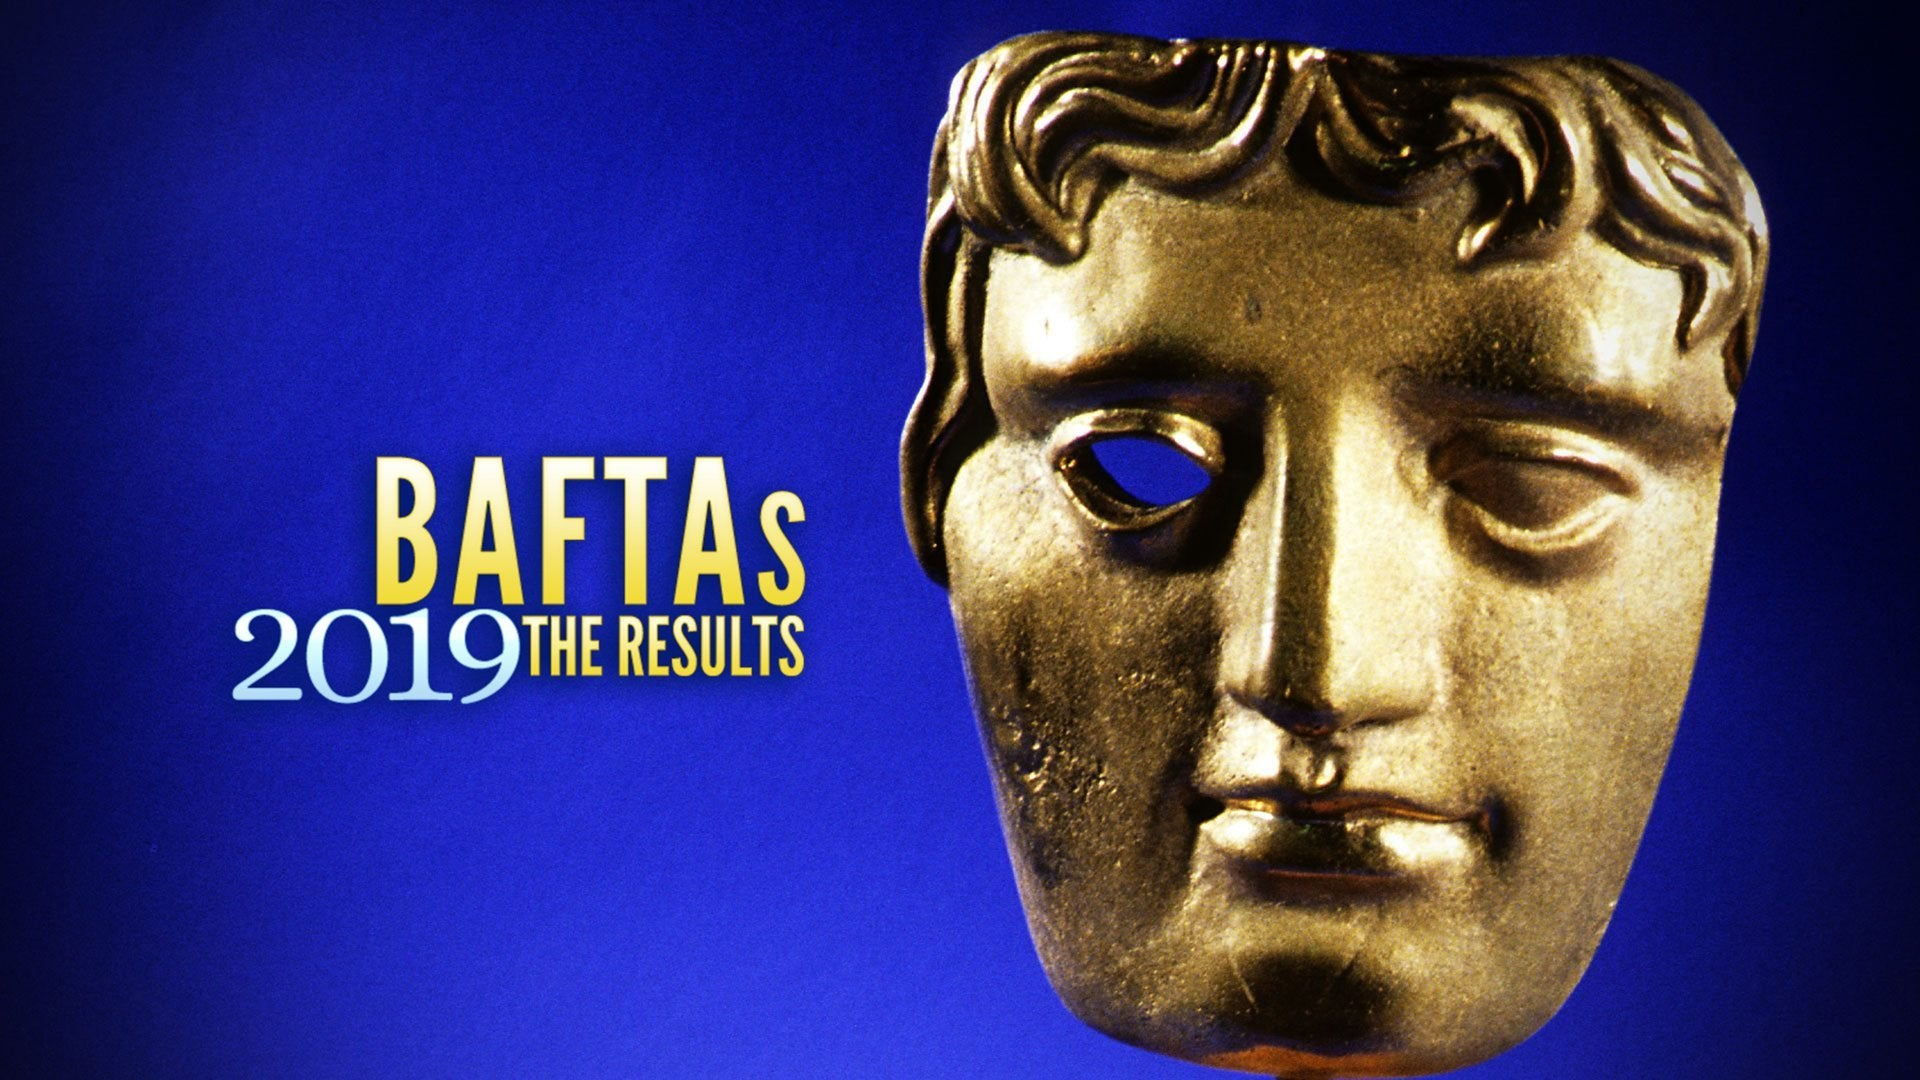 BAFTAs 2019: The Results